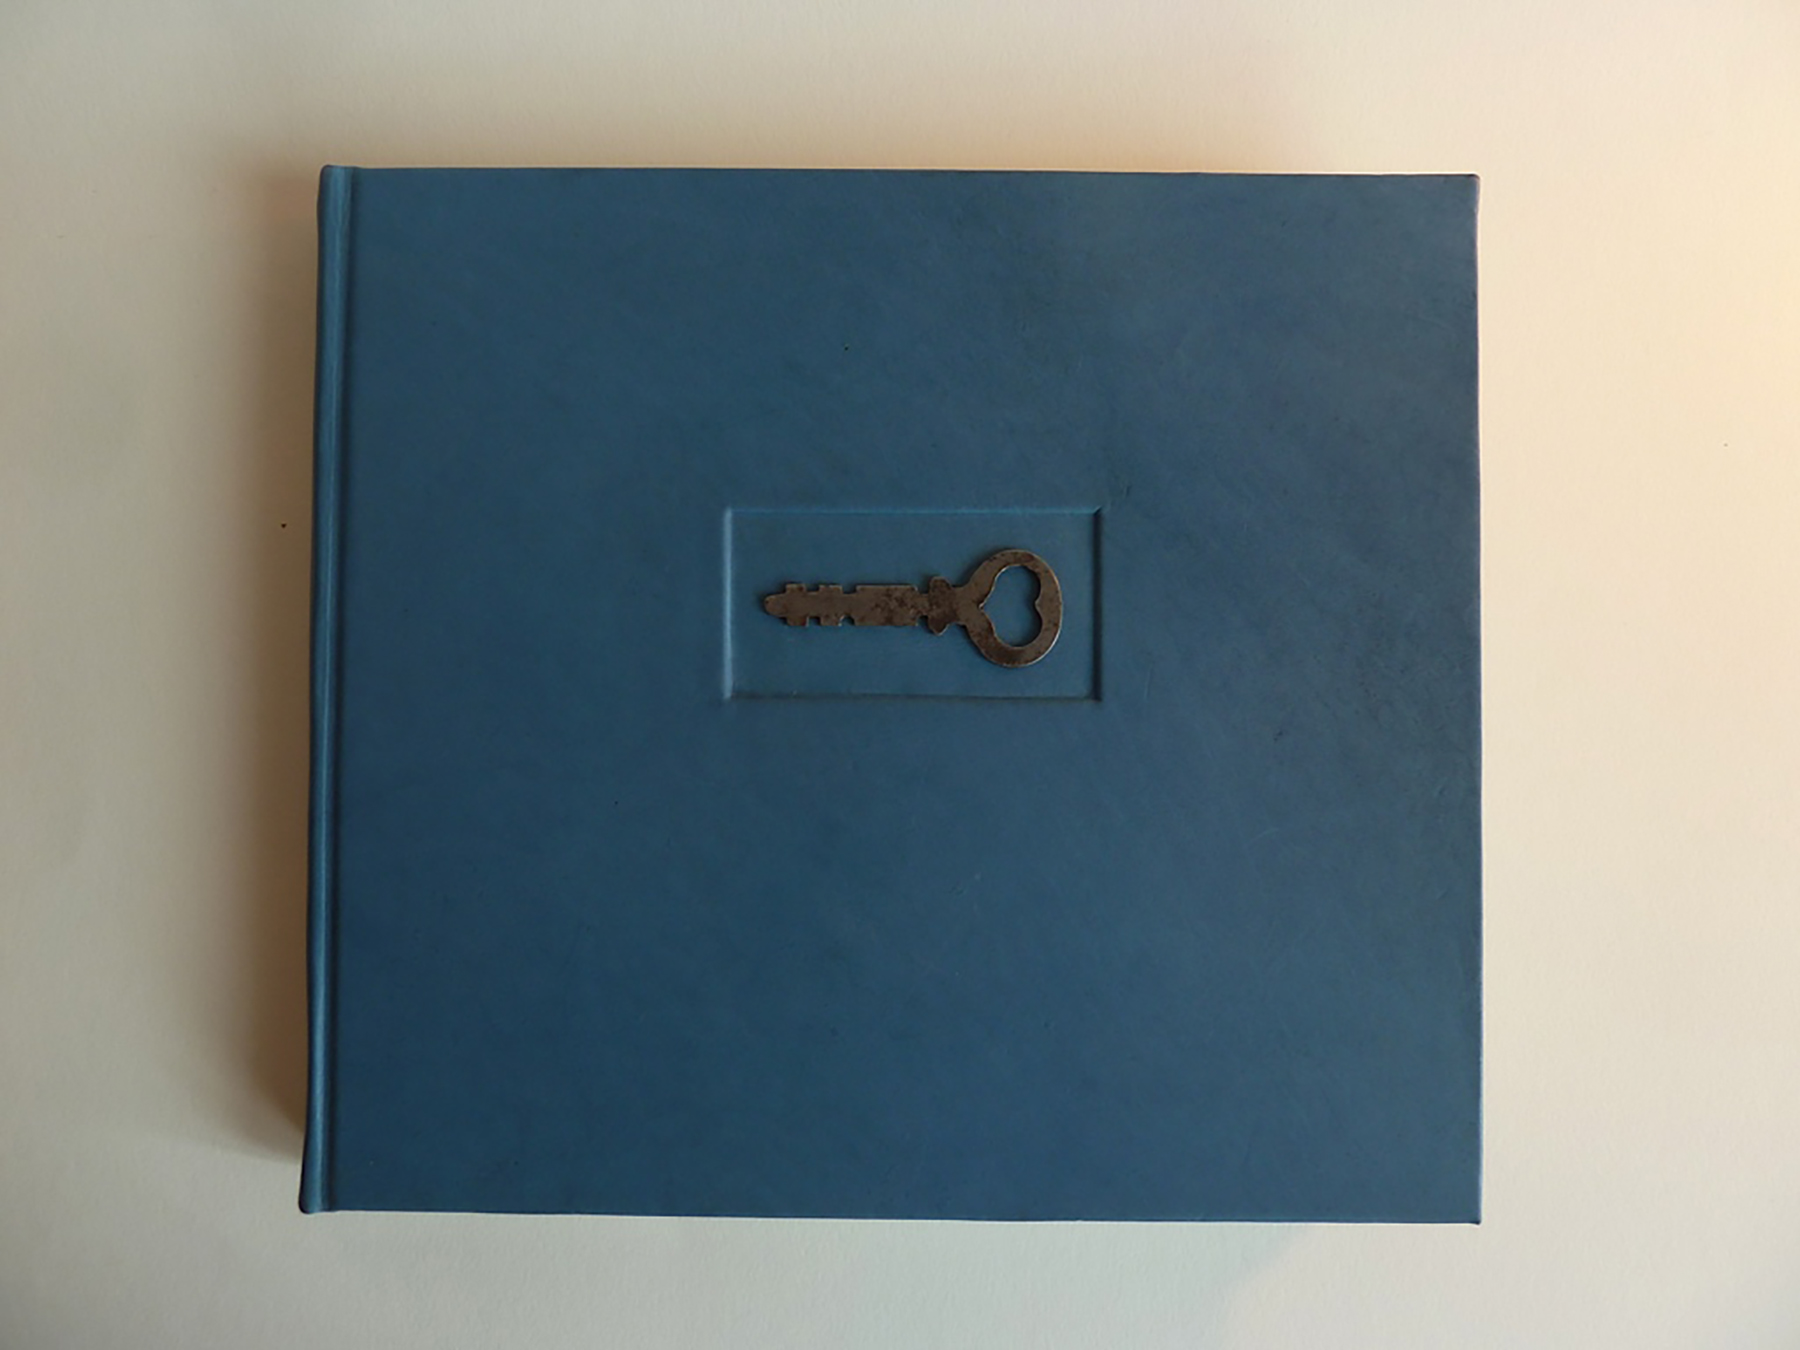 Full leather Guest Book with antique key